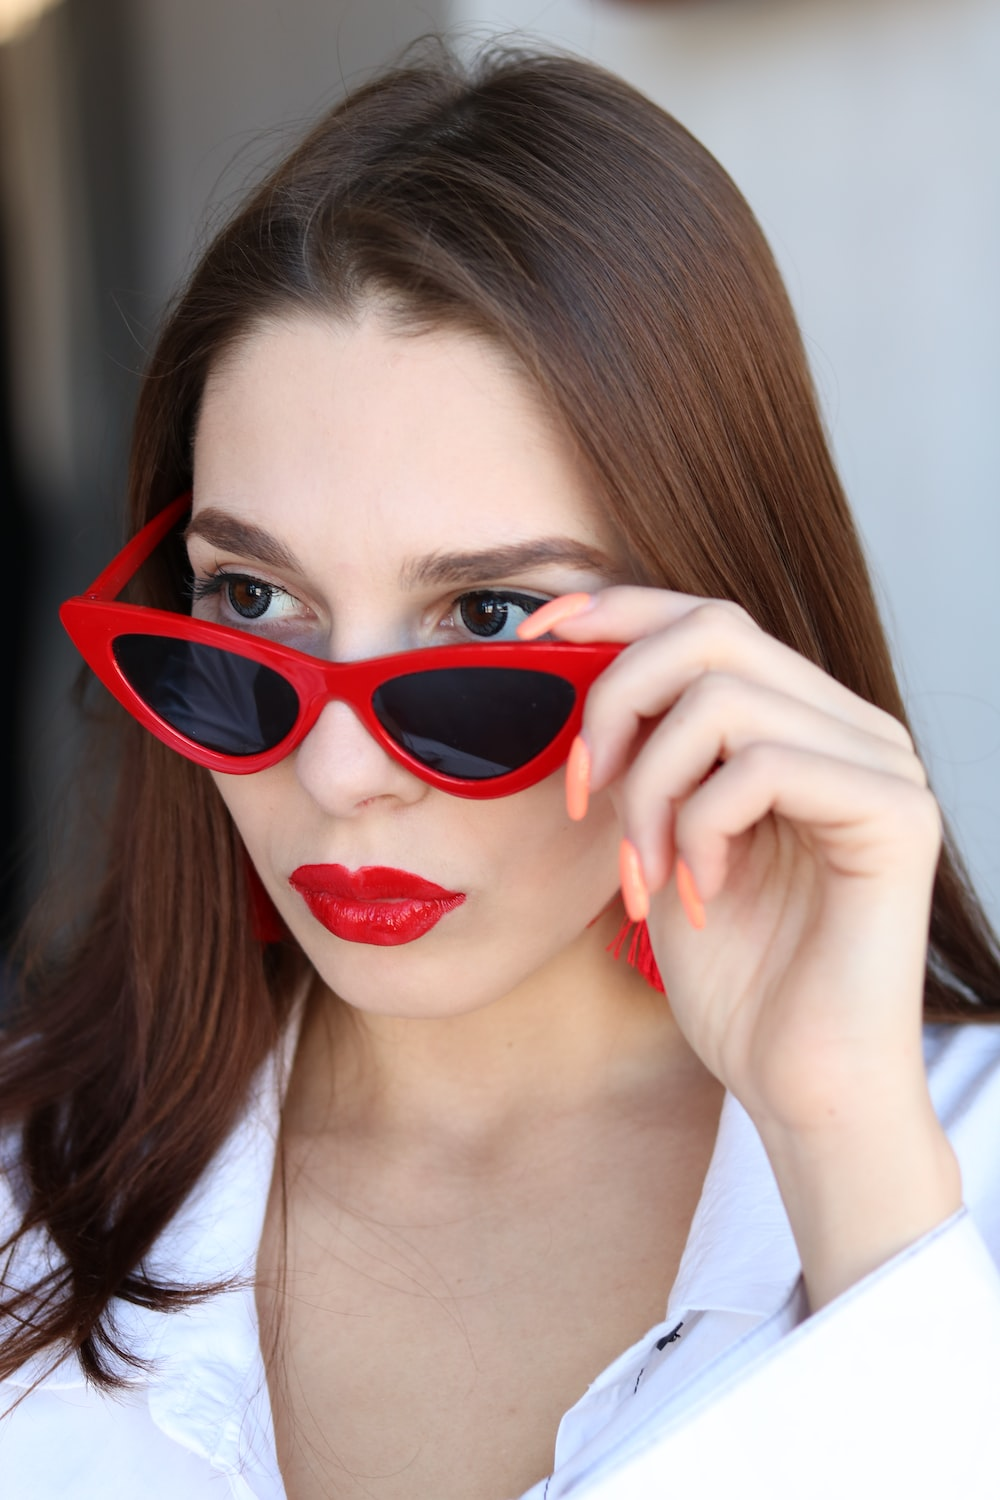 woman in white top about to wear off her red sunglasses